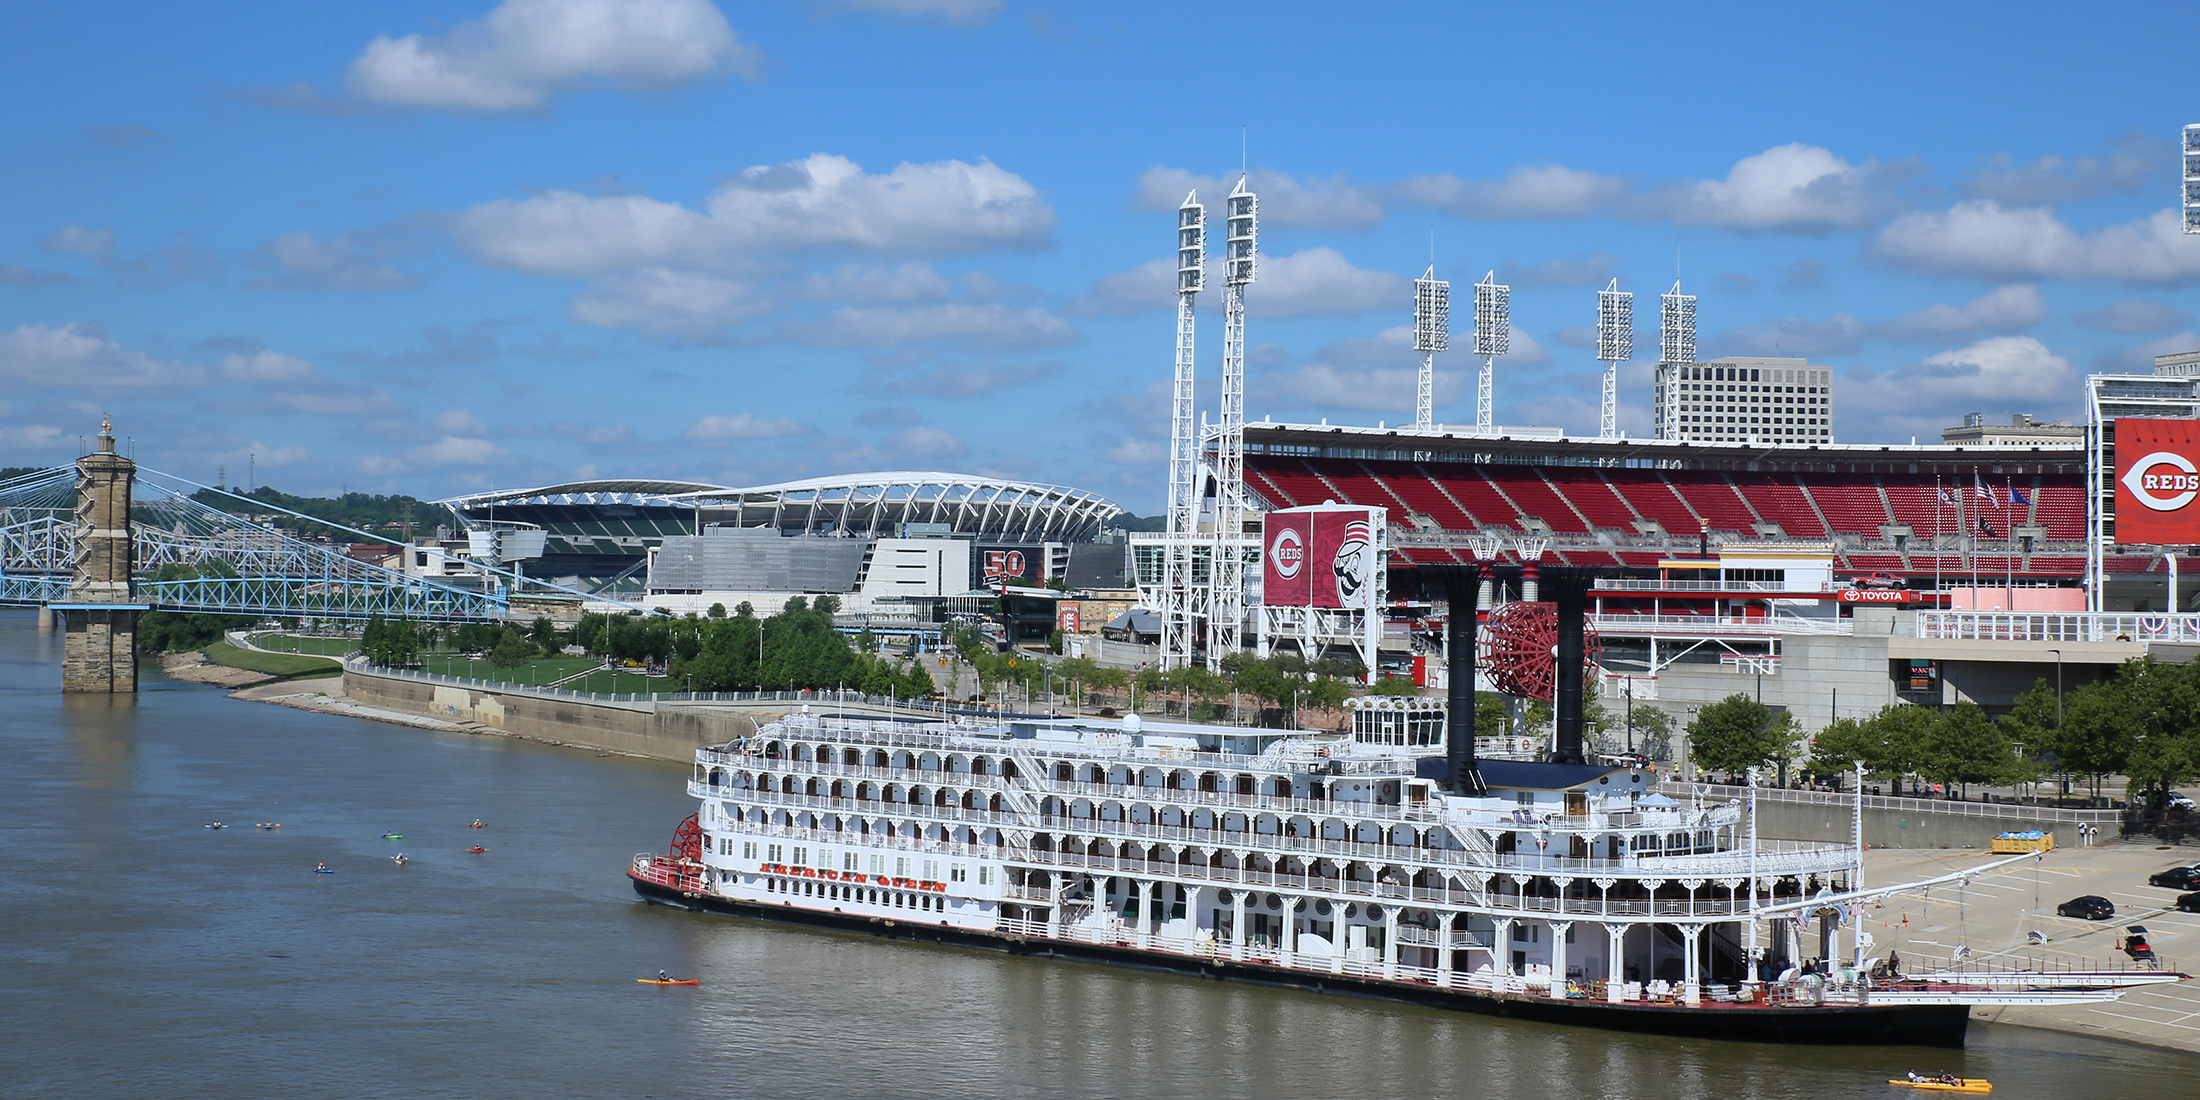 An American Music Festival With American Queen Steamboat Company!